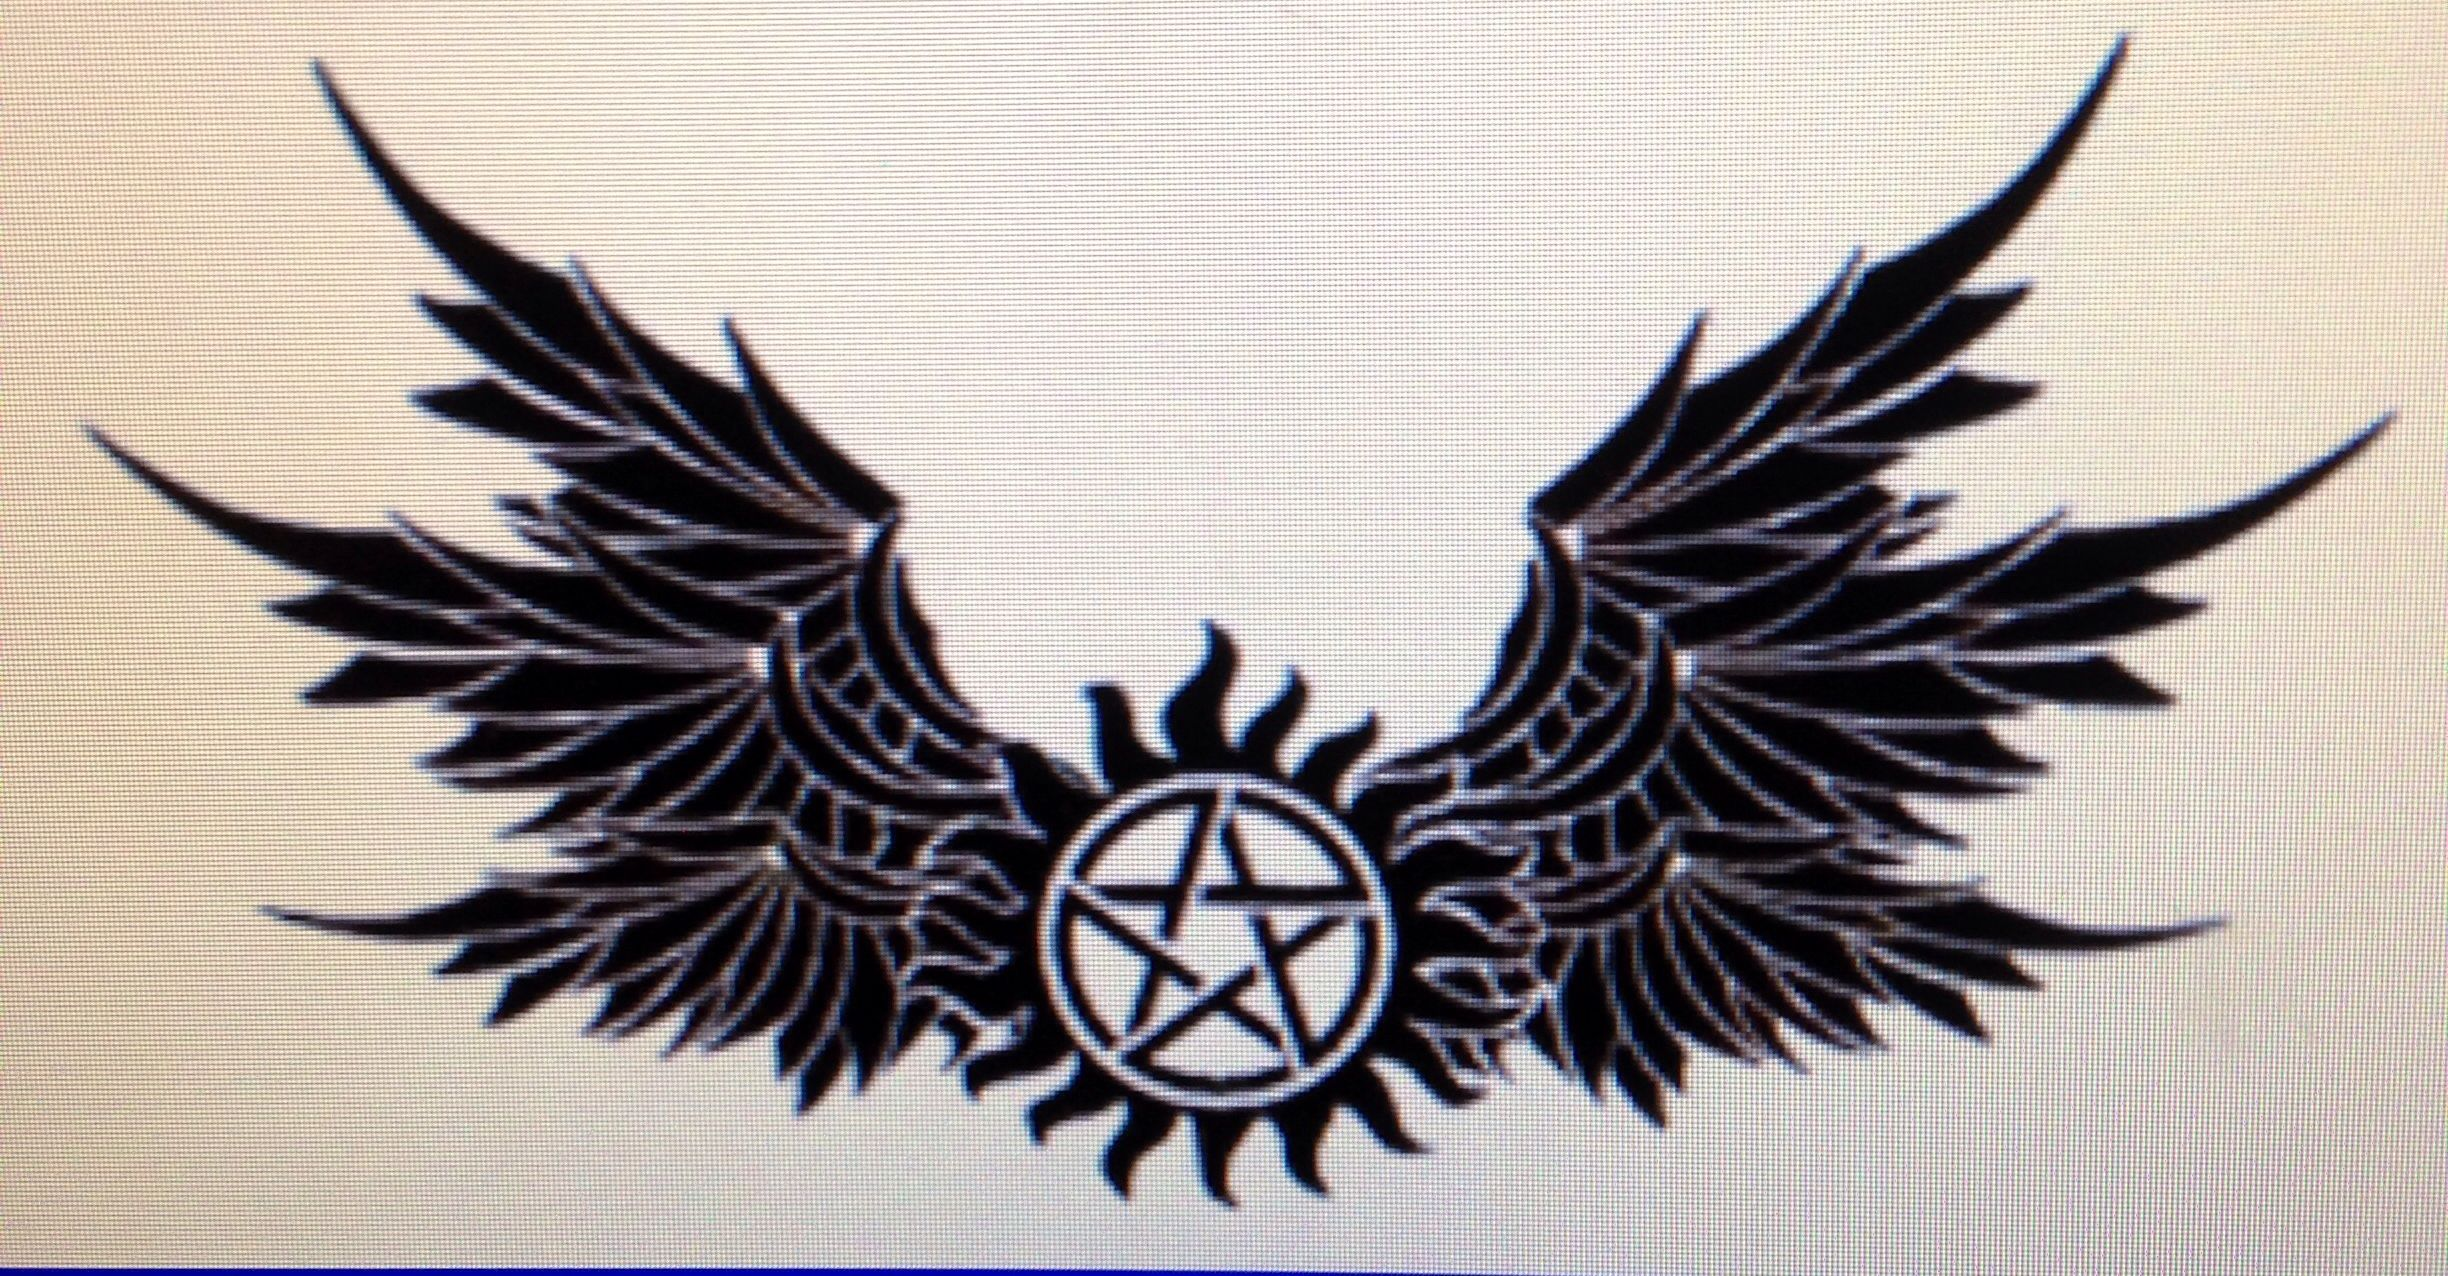 Possible supernatural tattoo Tattoos and piercings